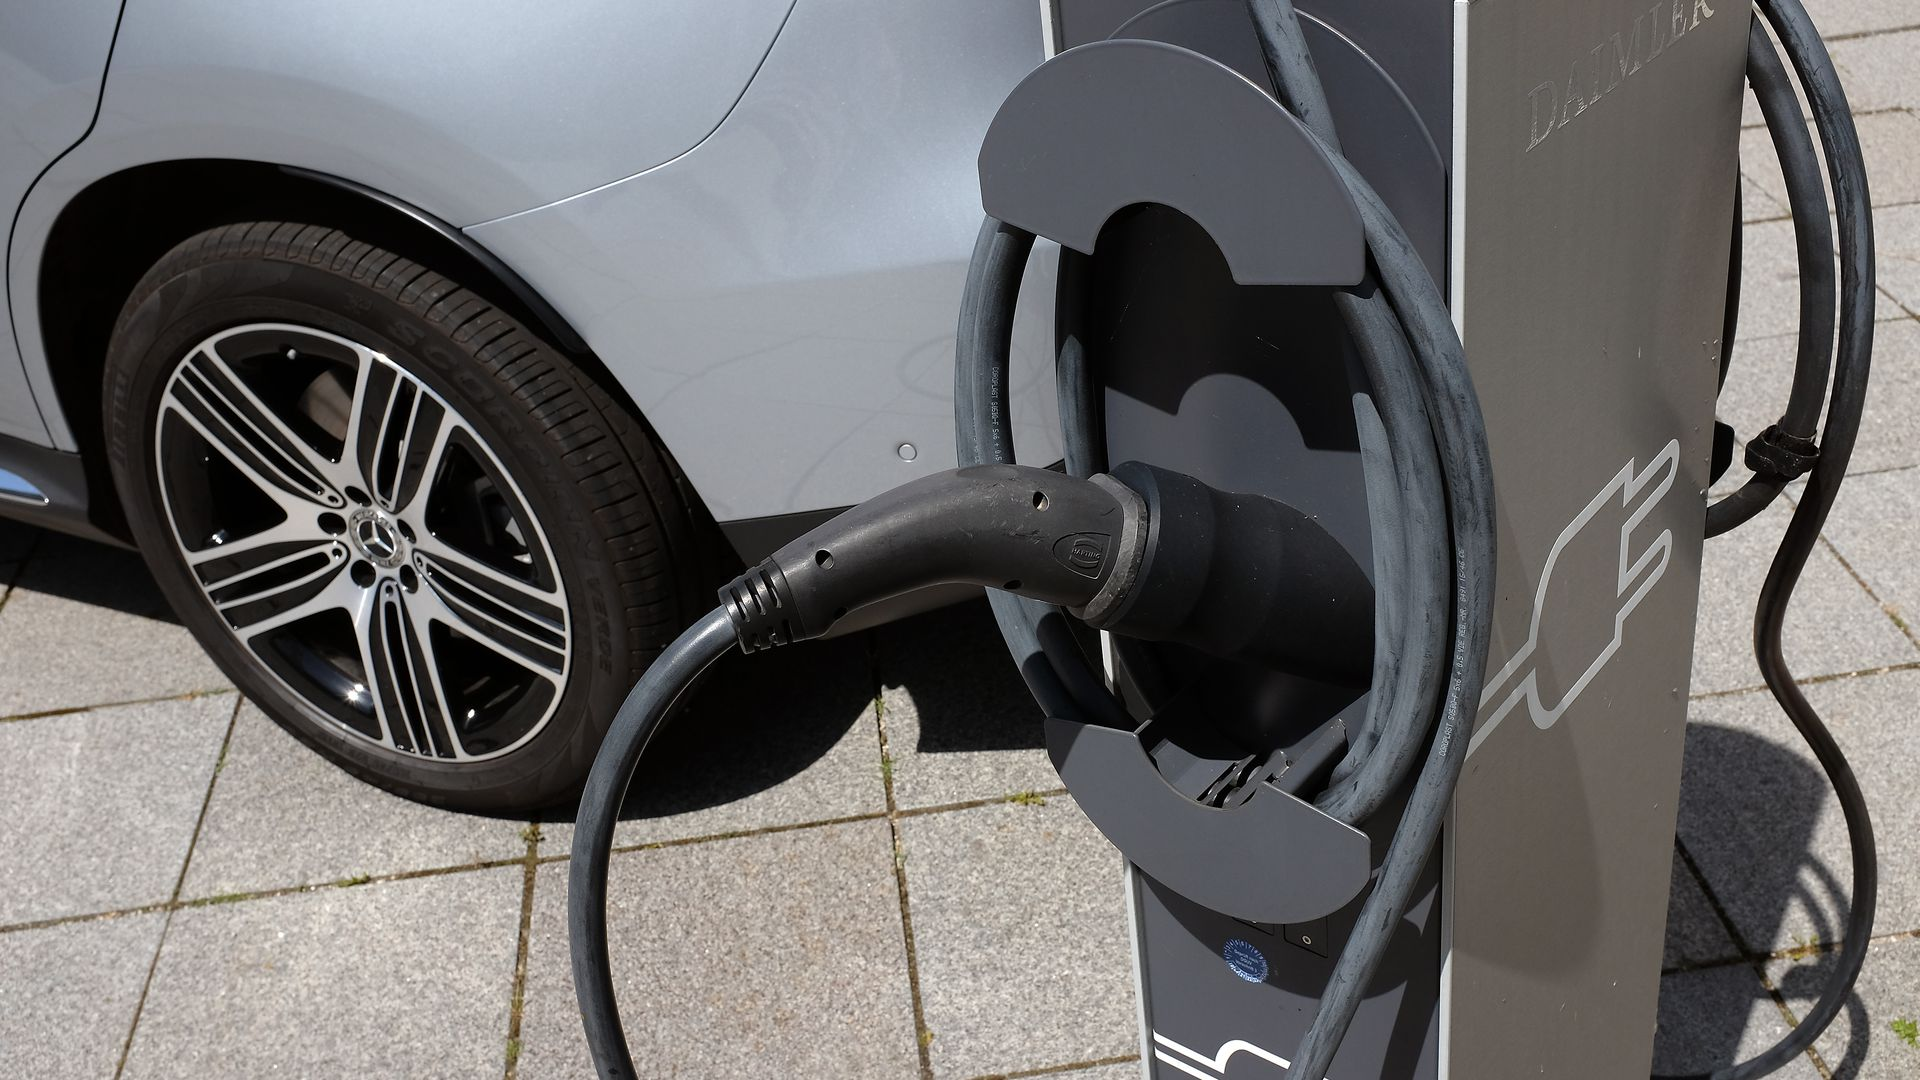 An EV charger